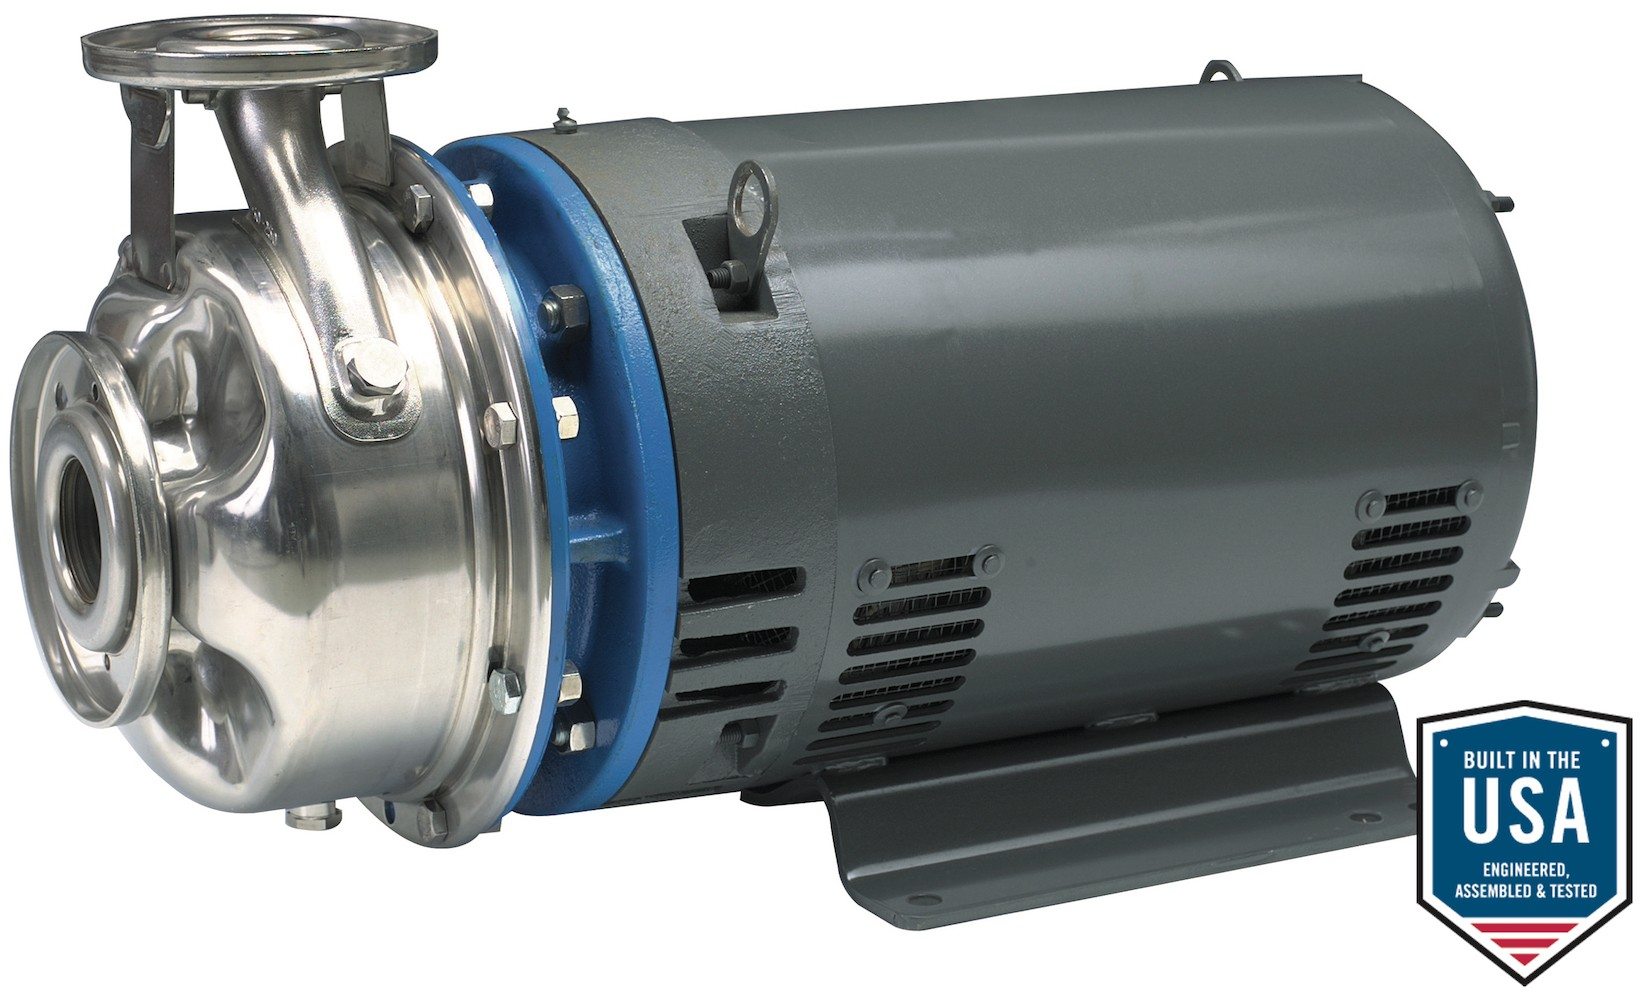 Goulds Part #10SH3F12A0, 1 x 2-8, 1 5HP, 115/230V, 1 Phase, Close-Coupled,  SSH Series Centrifugal Pump with TEFC Motor Enclosure